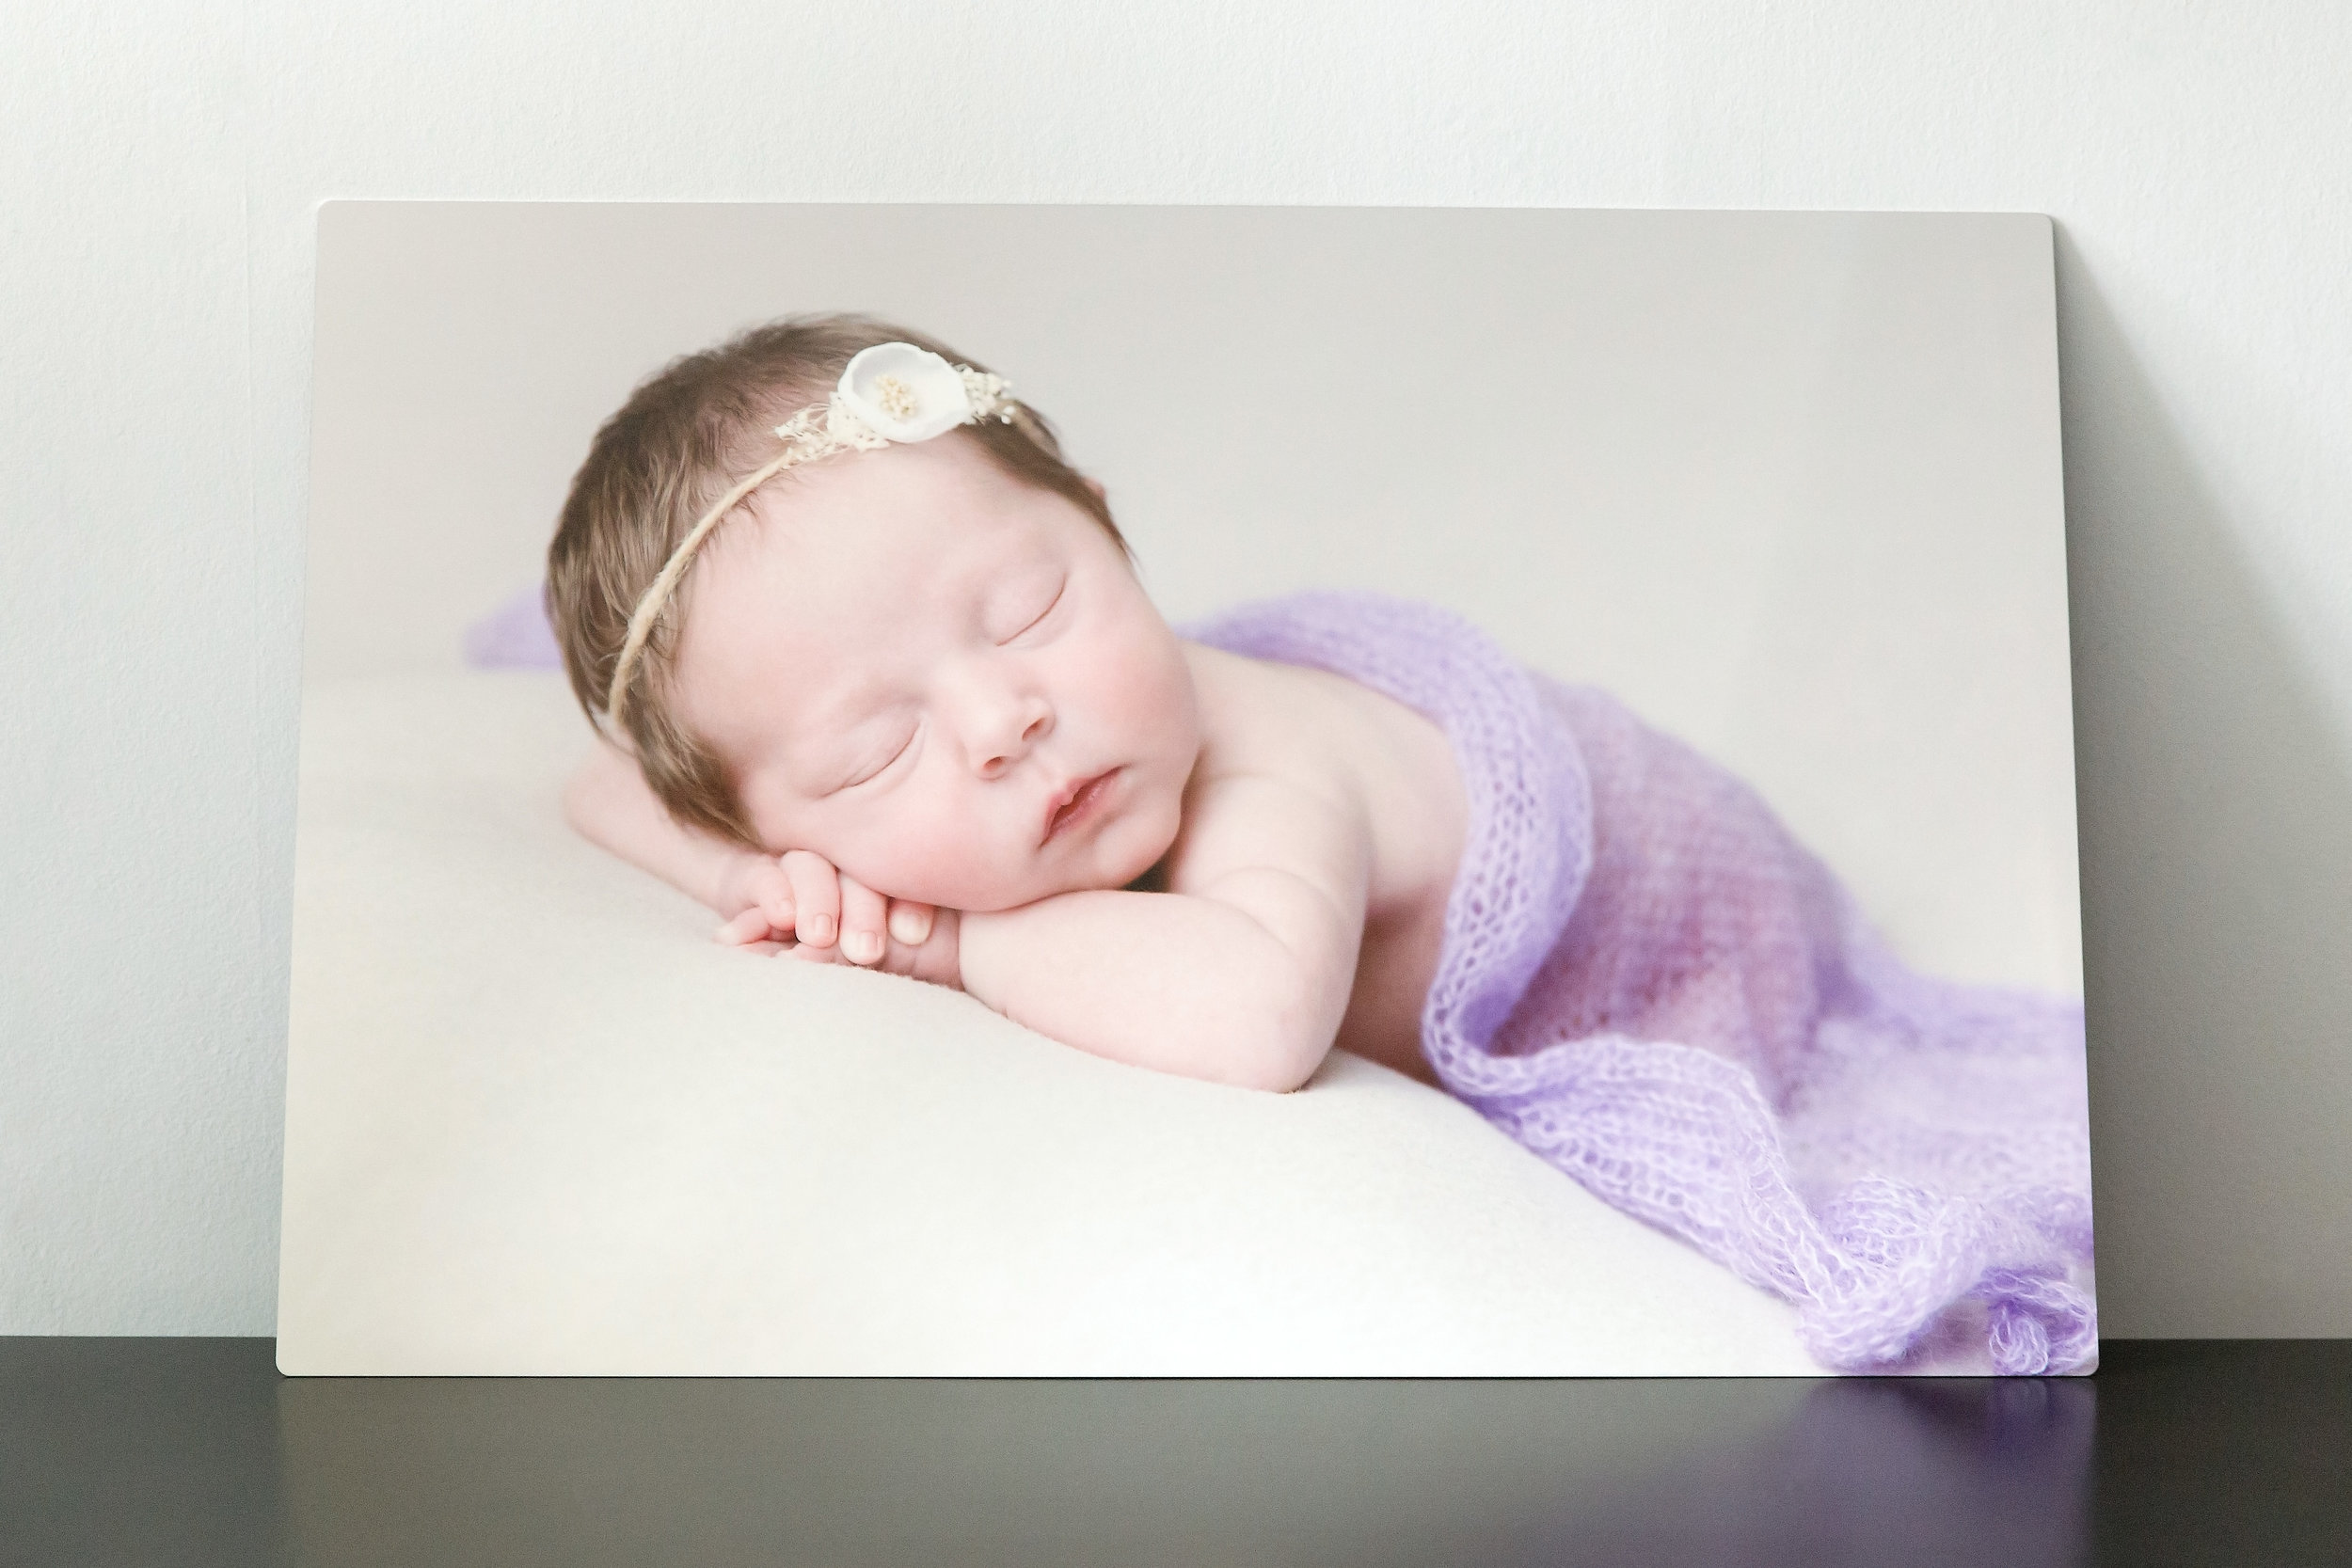 metal wall hanging of sleeping newborn girl covered in a thin purple blanket while wearing a white headband